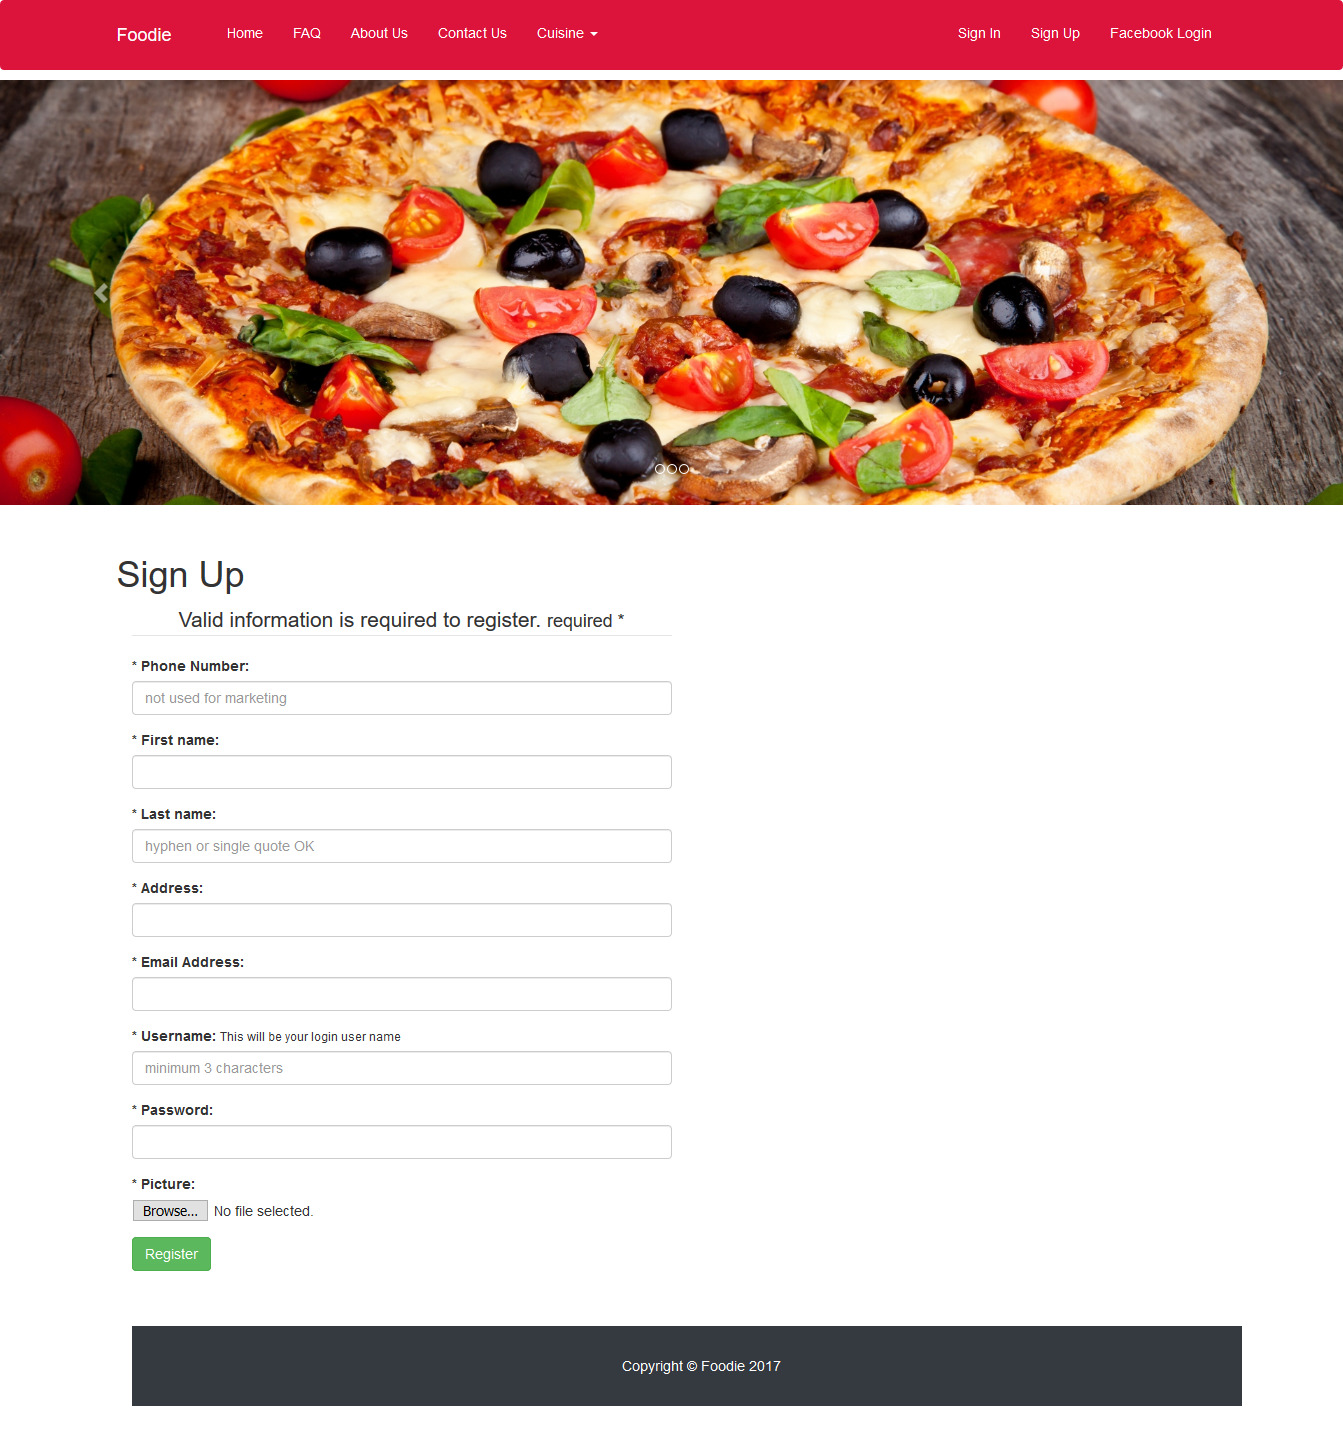 GitHub - adar2378/Food-Delivery: A website like foodpanda to order